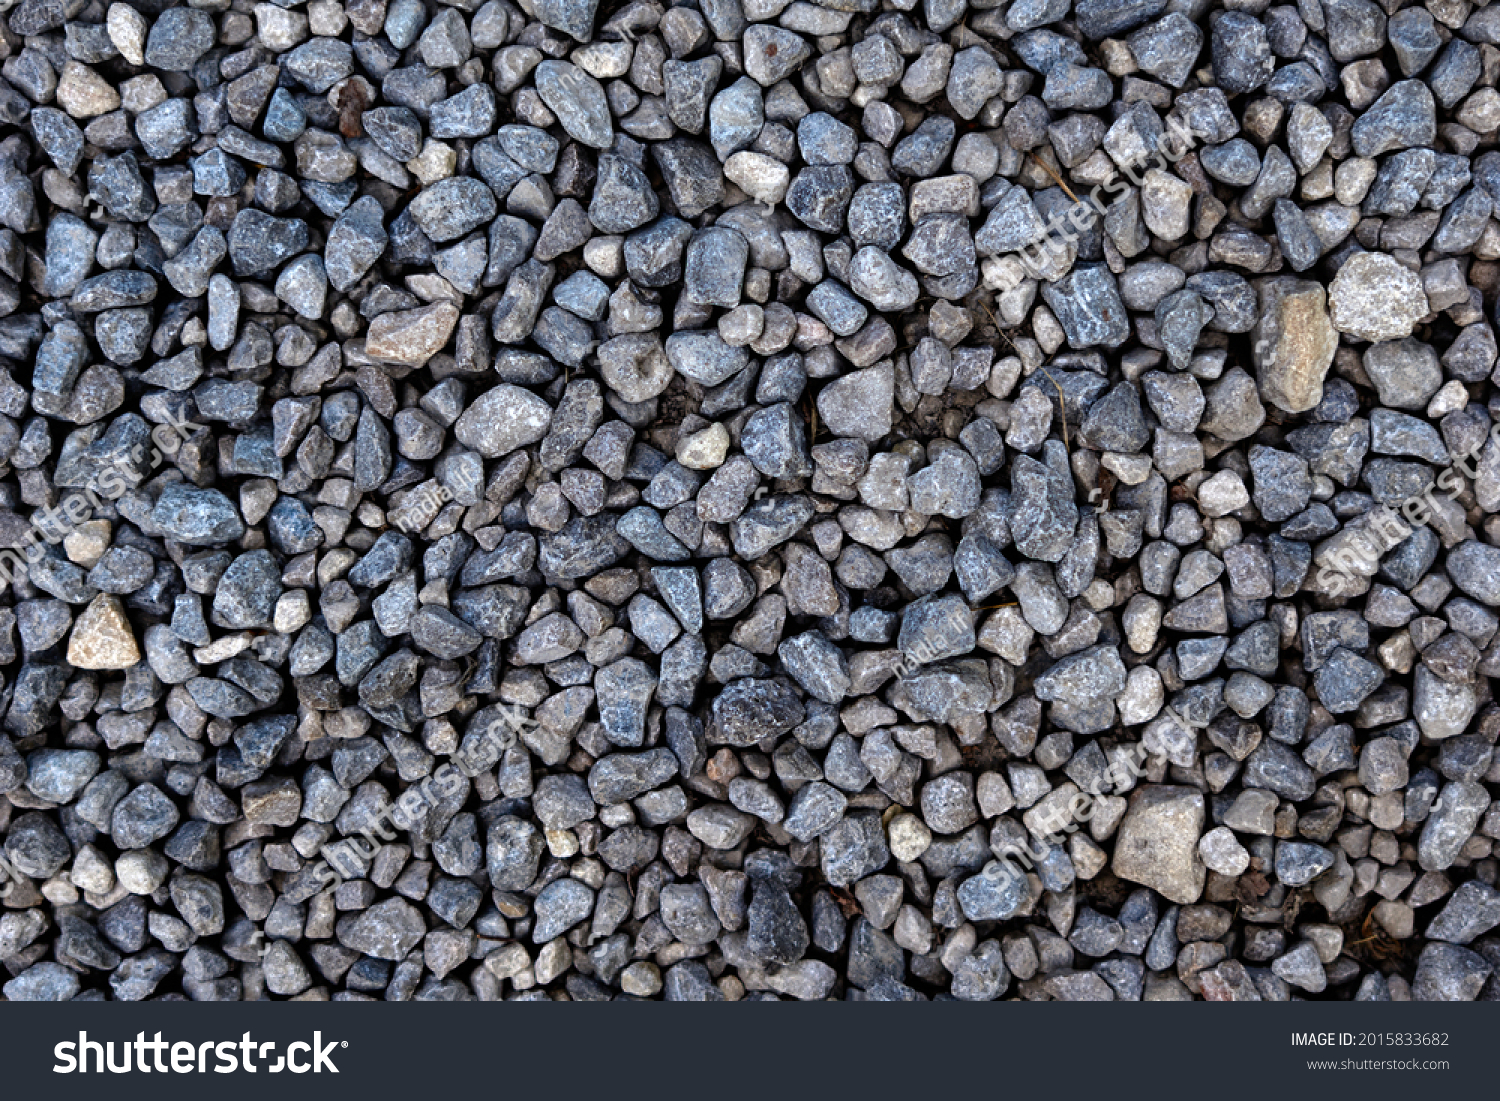 Smooth round pebbles texture background. Pebble sea beach close-up, dark wet pebble and gray dry pebble. High quality photo #2015833682